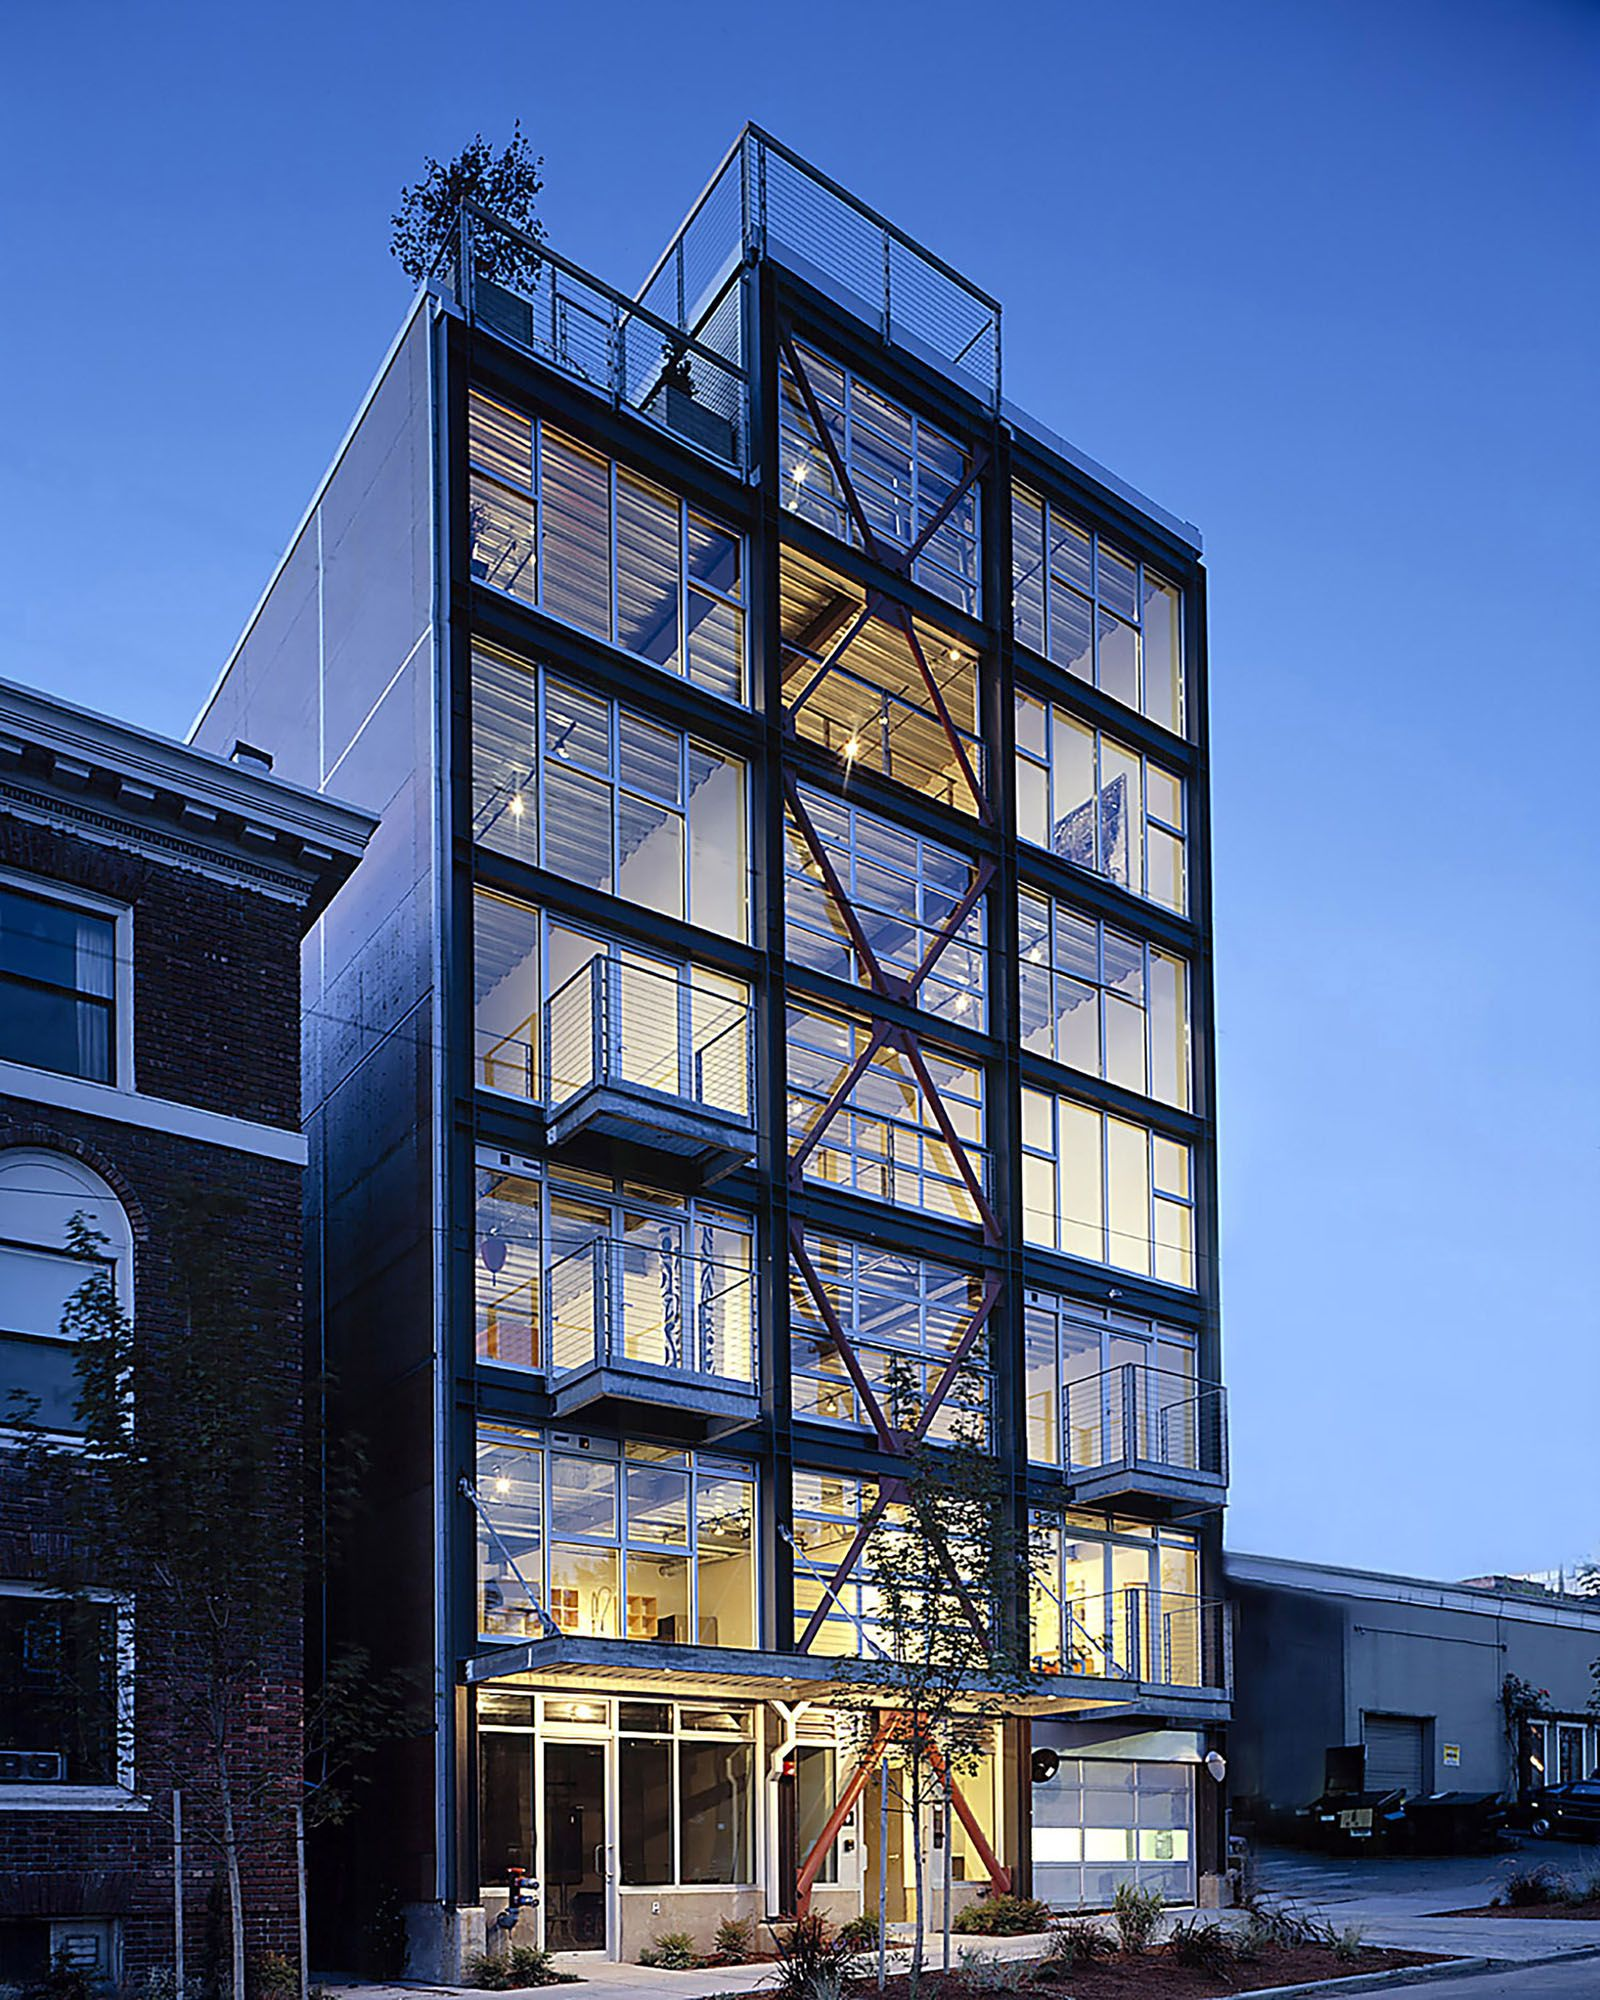 Incroyable Capitol Hill Seattle Loft Apartment Building